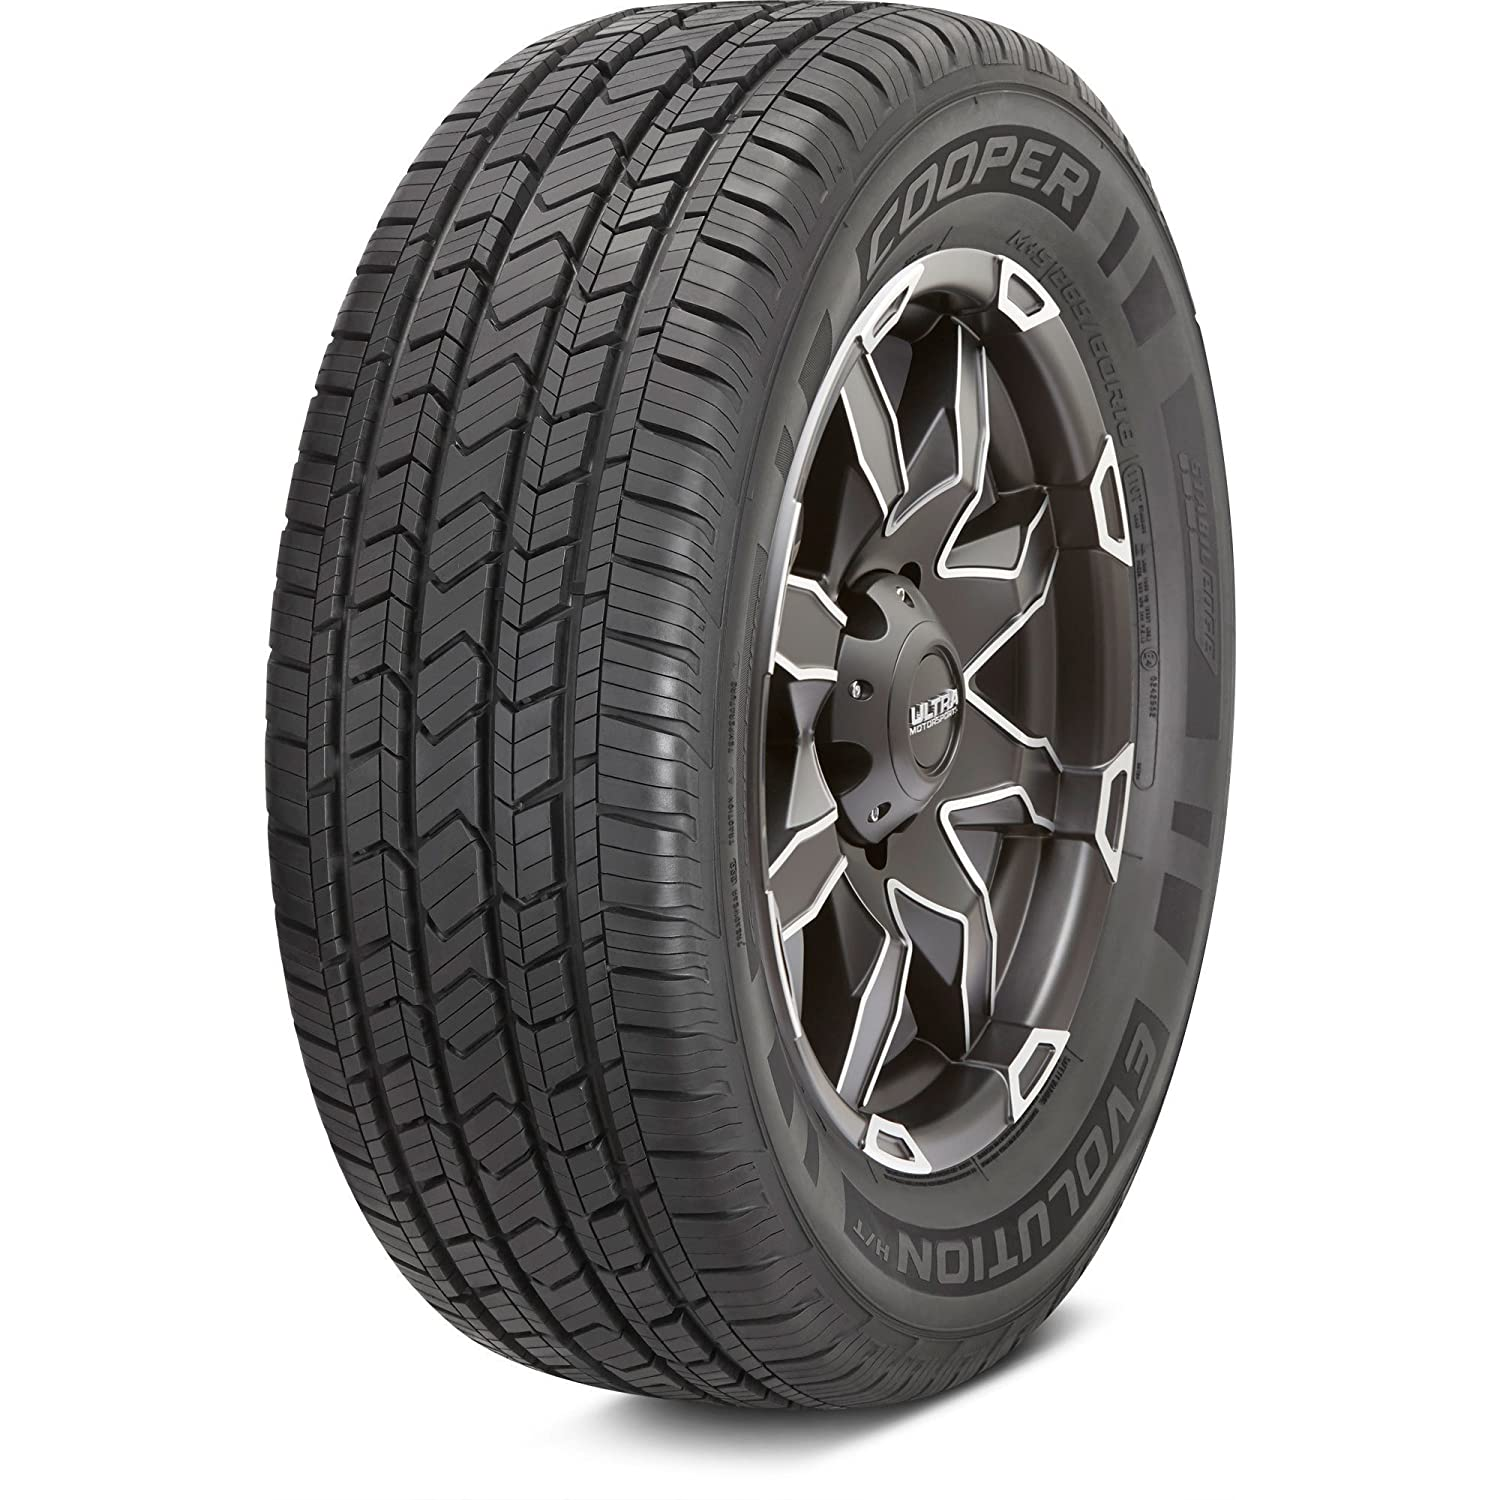 Cooper Evolution H/T All Season Tire - 235/75R15 109T 90000032216